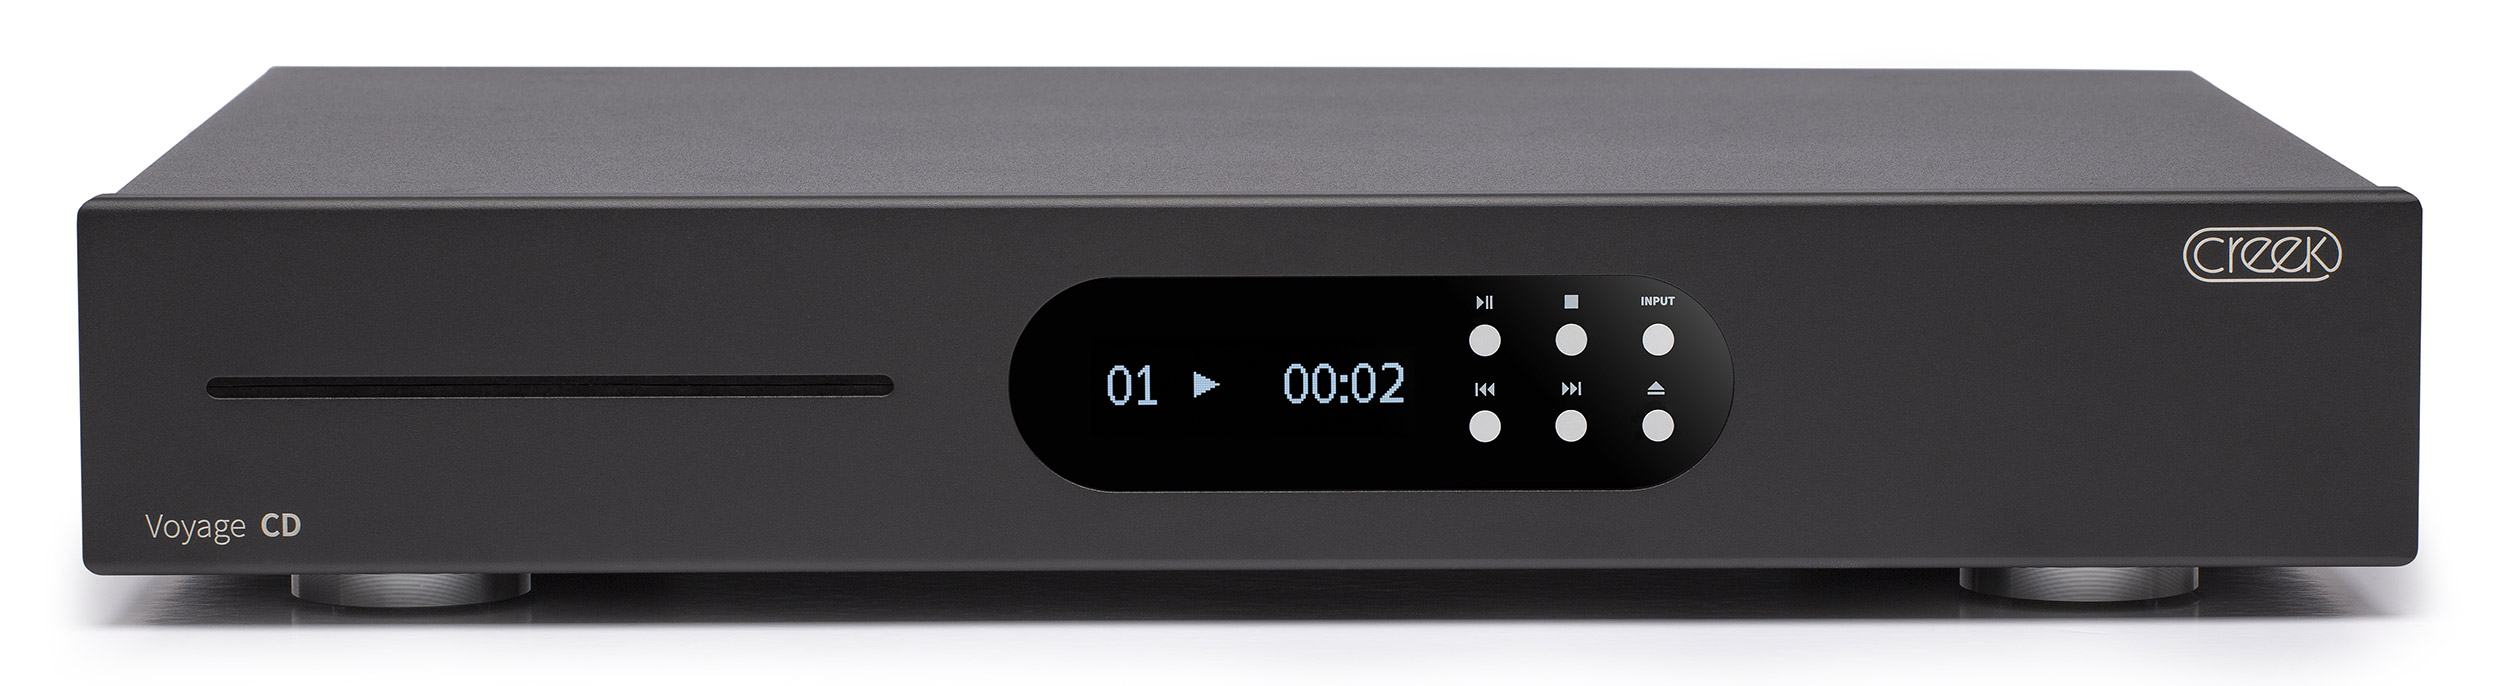 Creek Audio - Voyage CD player in Black